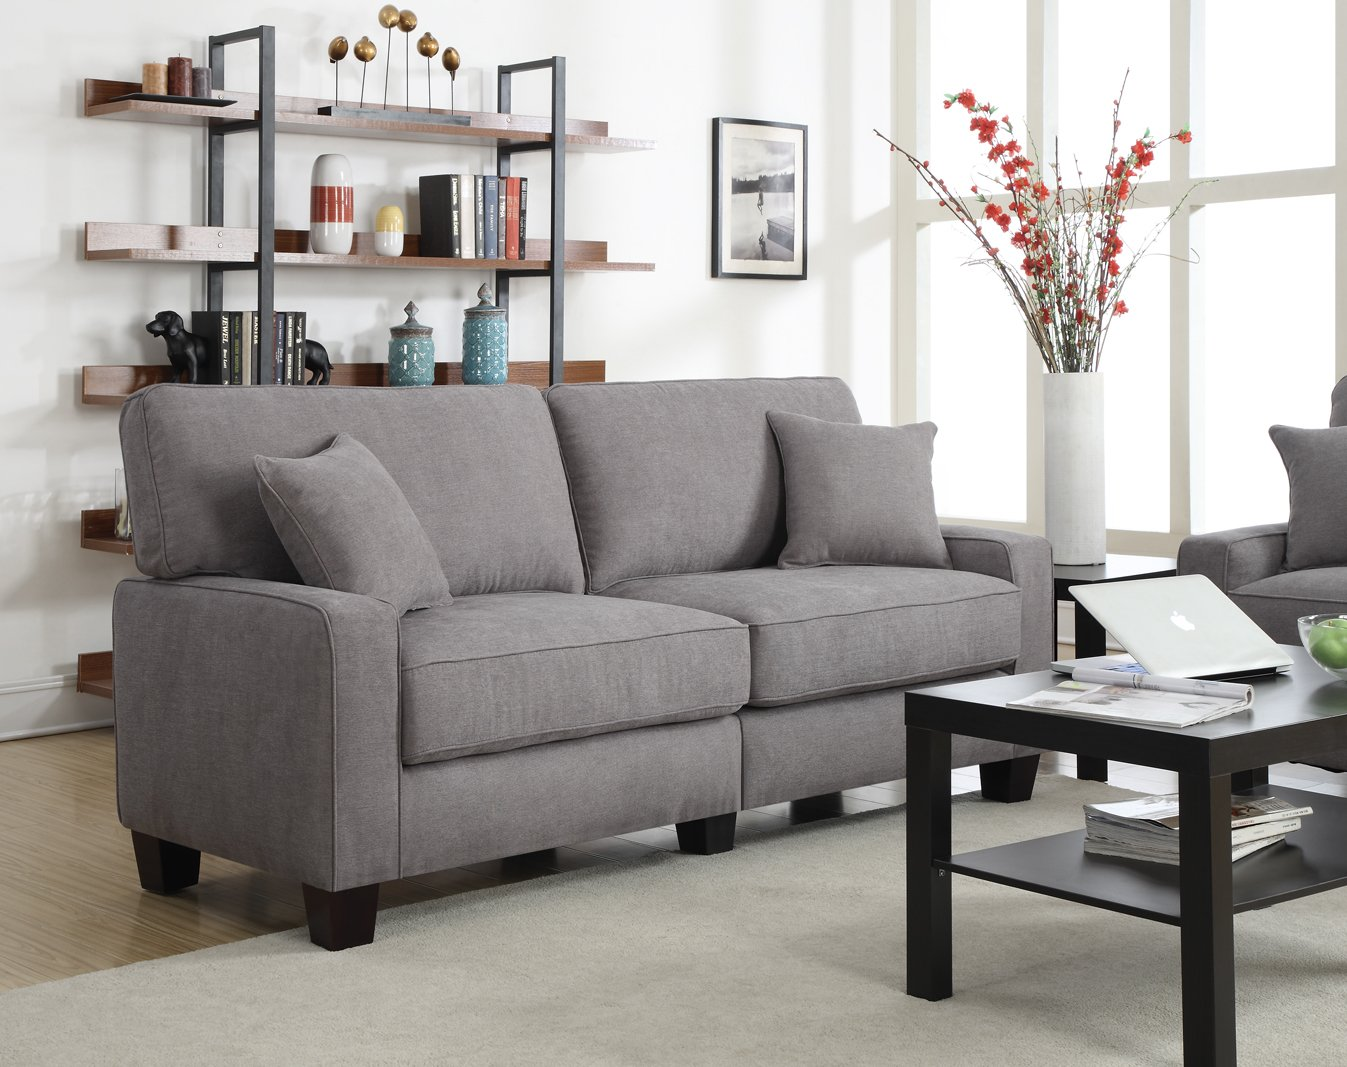 The 5 Best Living Room Sofas And Couches: Buying Guide & Reviews 20